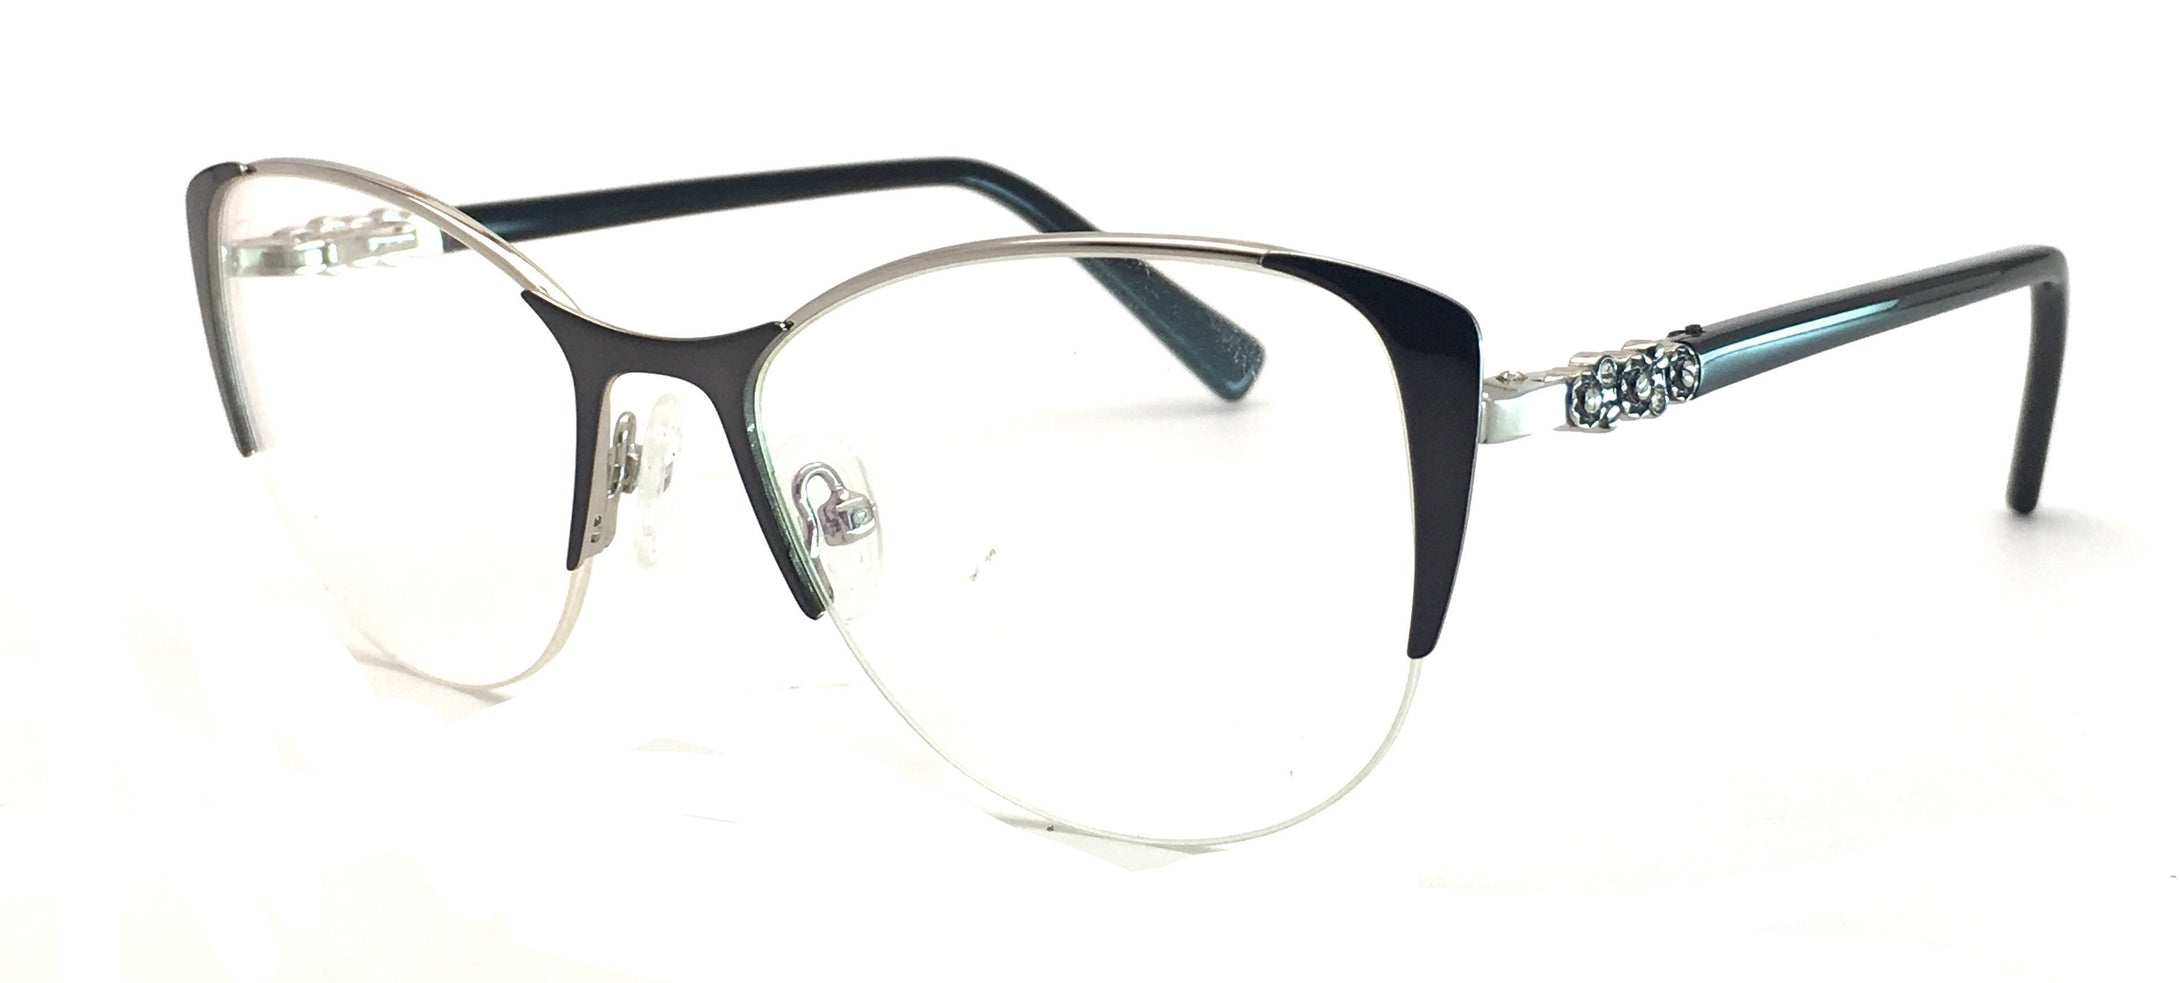 Angrish AG-10034-C3 Cat-Eye Eyeglasses